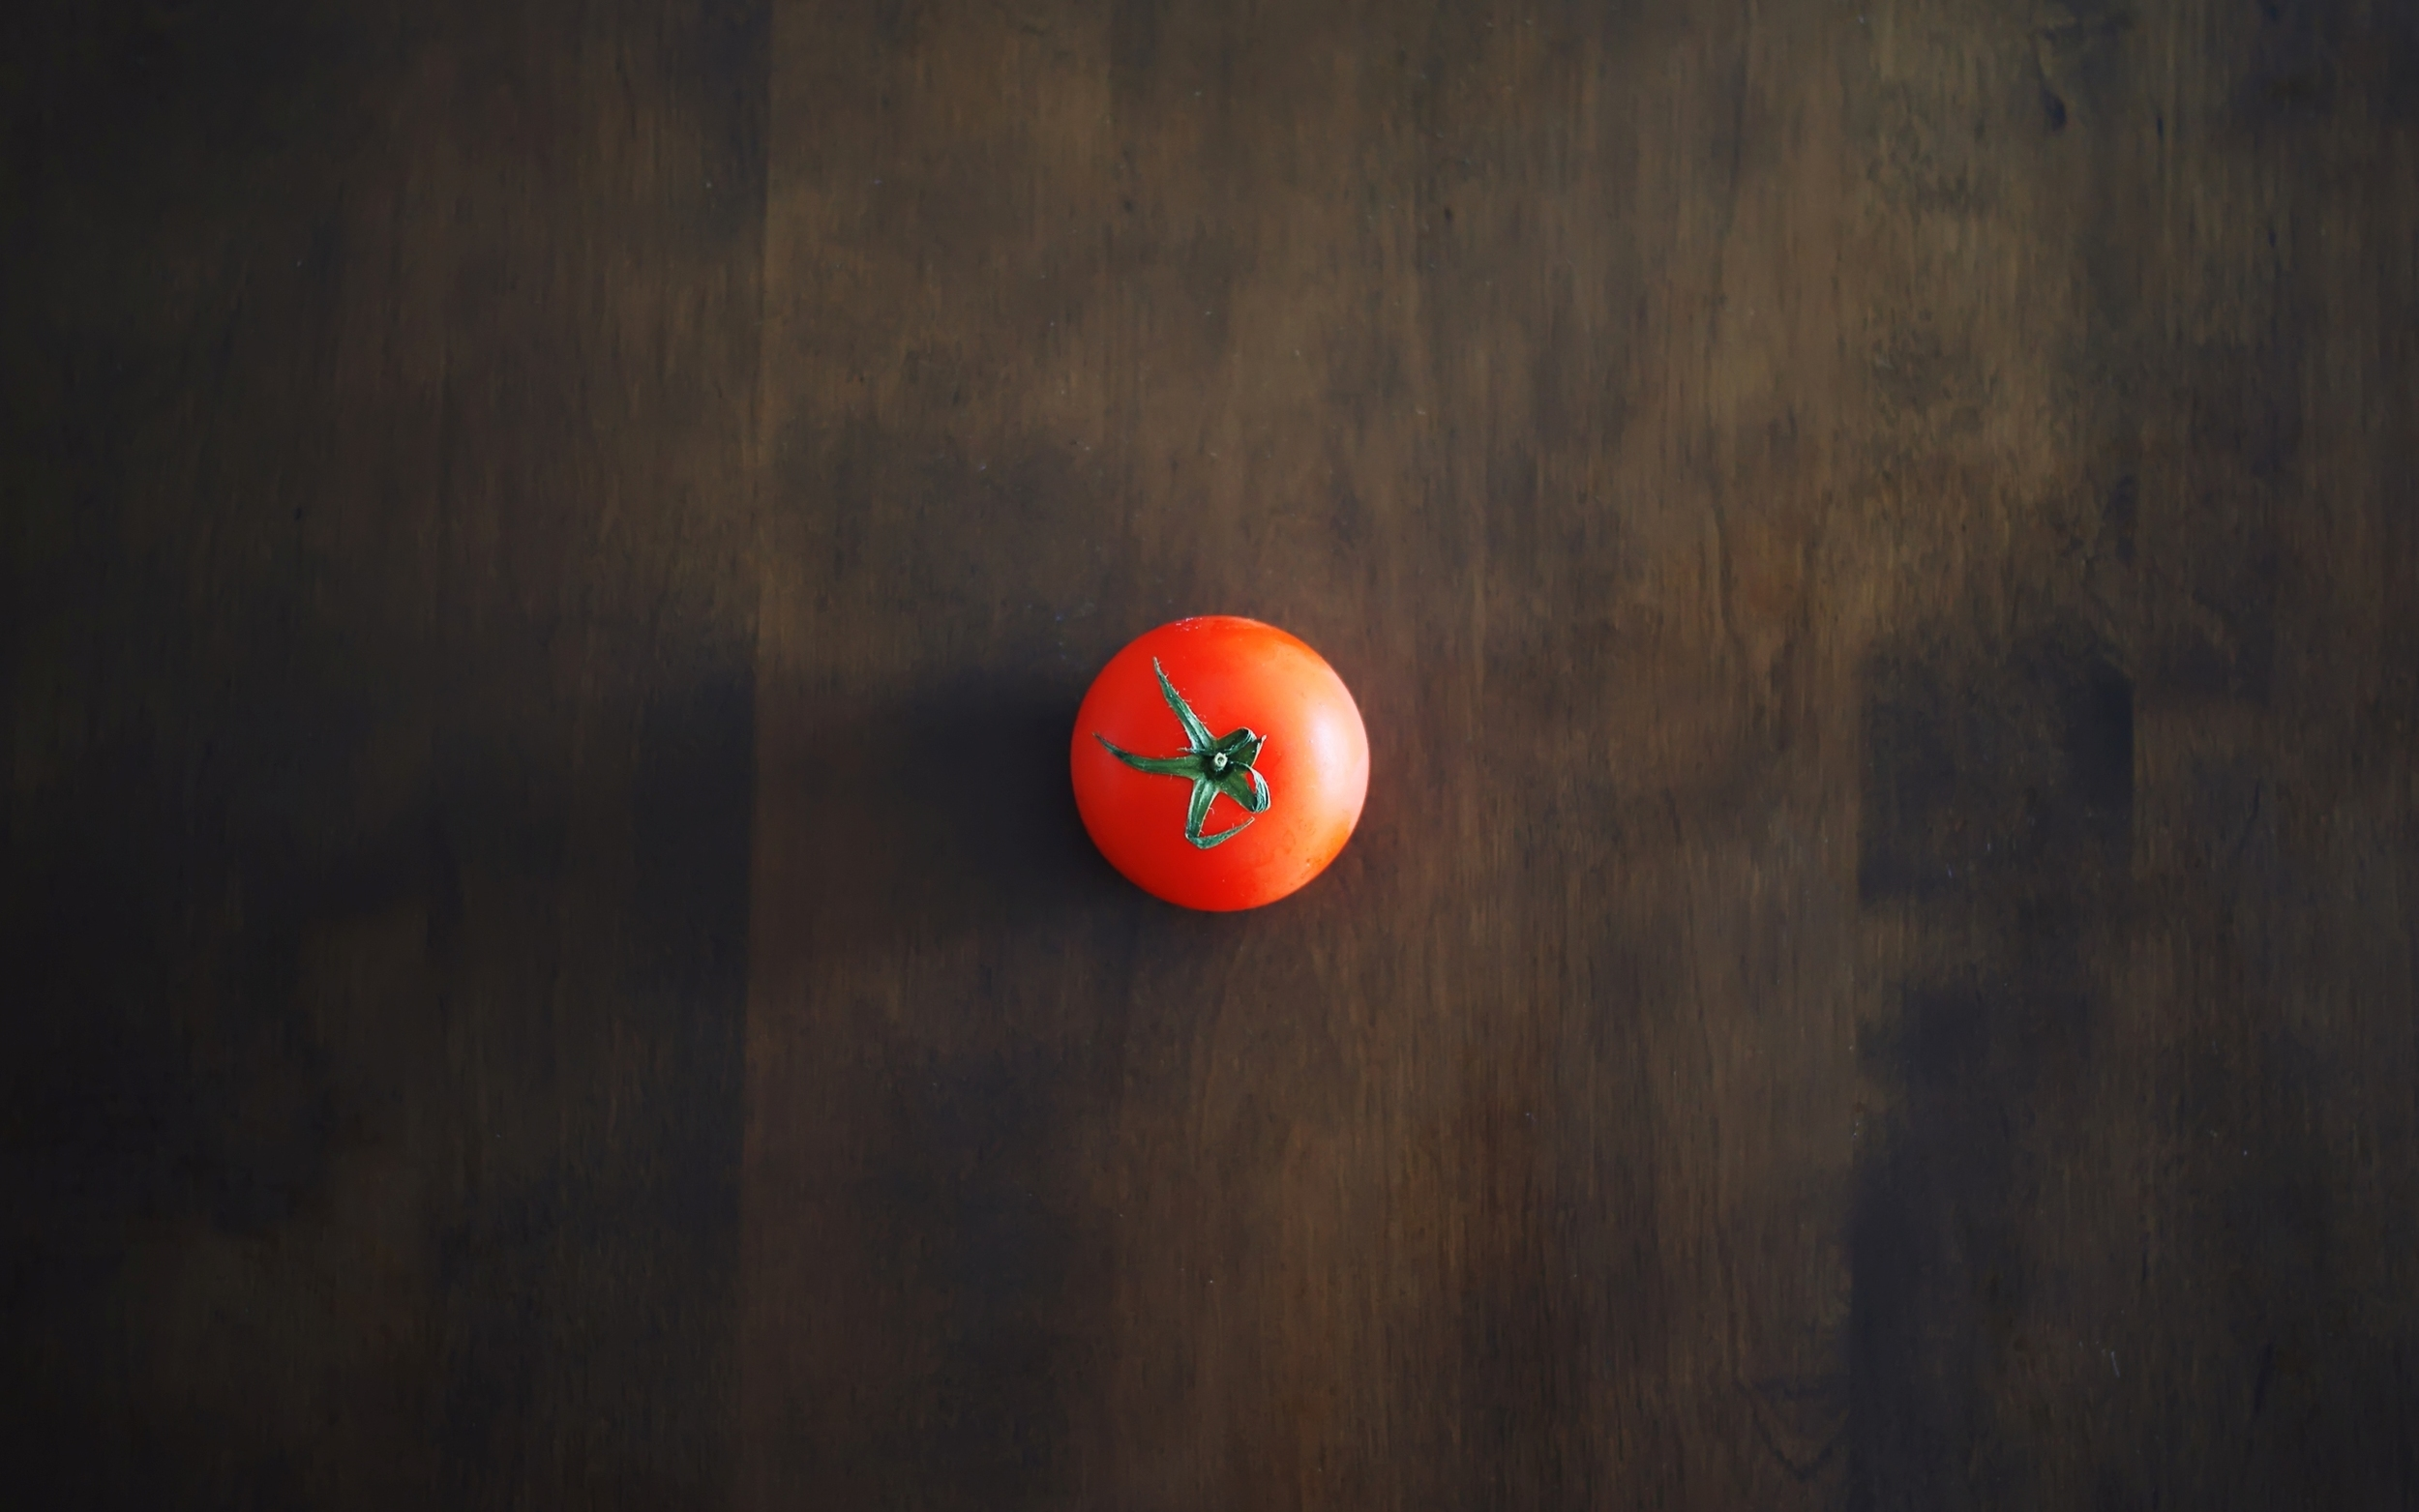 minimalism-table-red-tomato-shadow-background-wallpaper-1